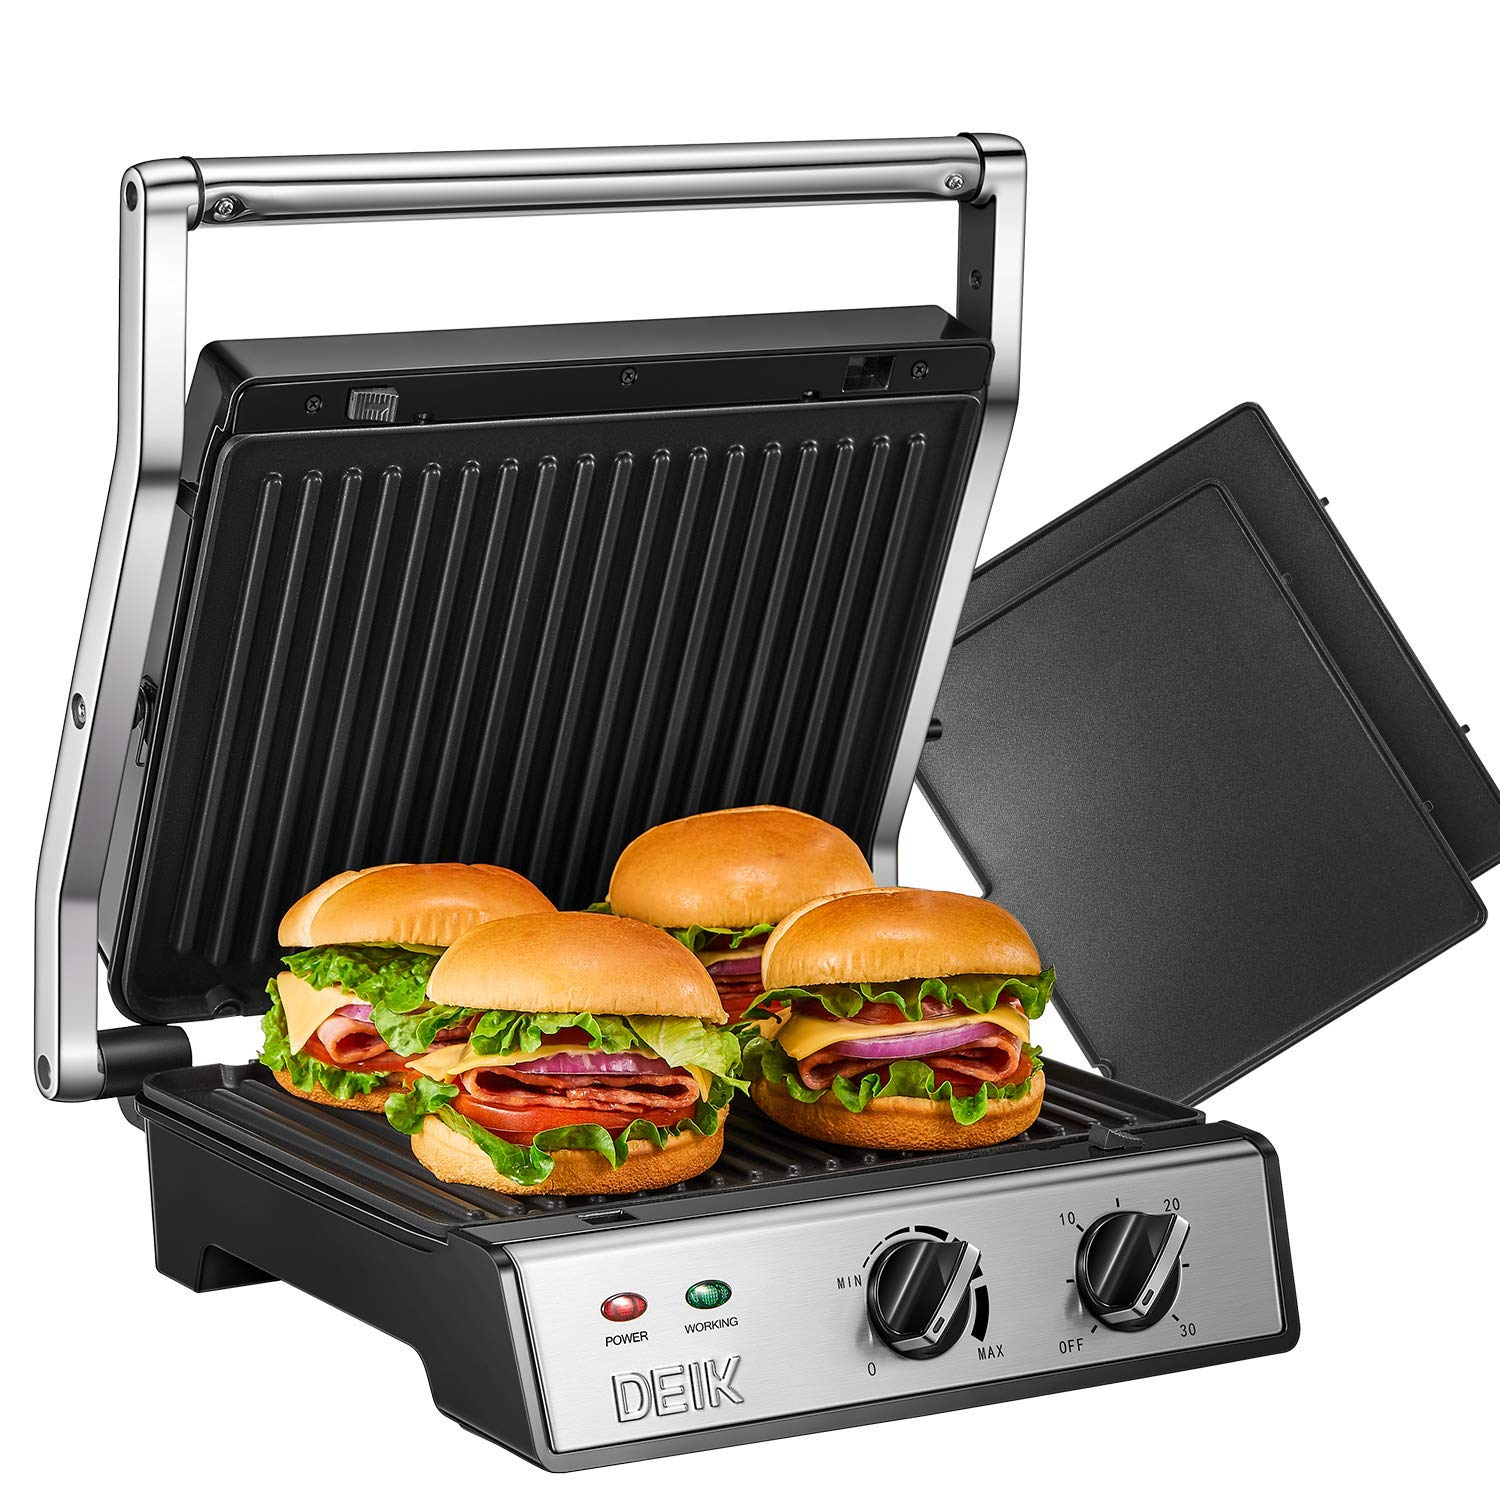 DEIK Panini Press, 6-in-1 Smokeless Indoor Grill with Timer and Temperature Control, 4 Non-Stick Removable Plates, Opens 180 Degrees for Panini, Grilled Meat, Steaks by Deik